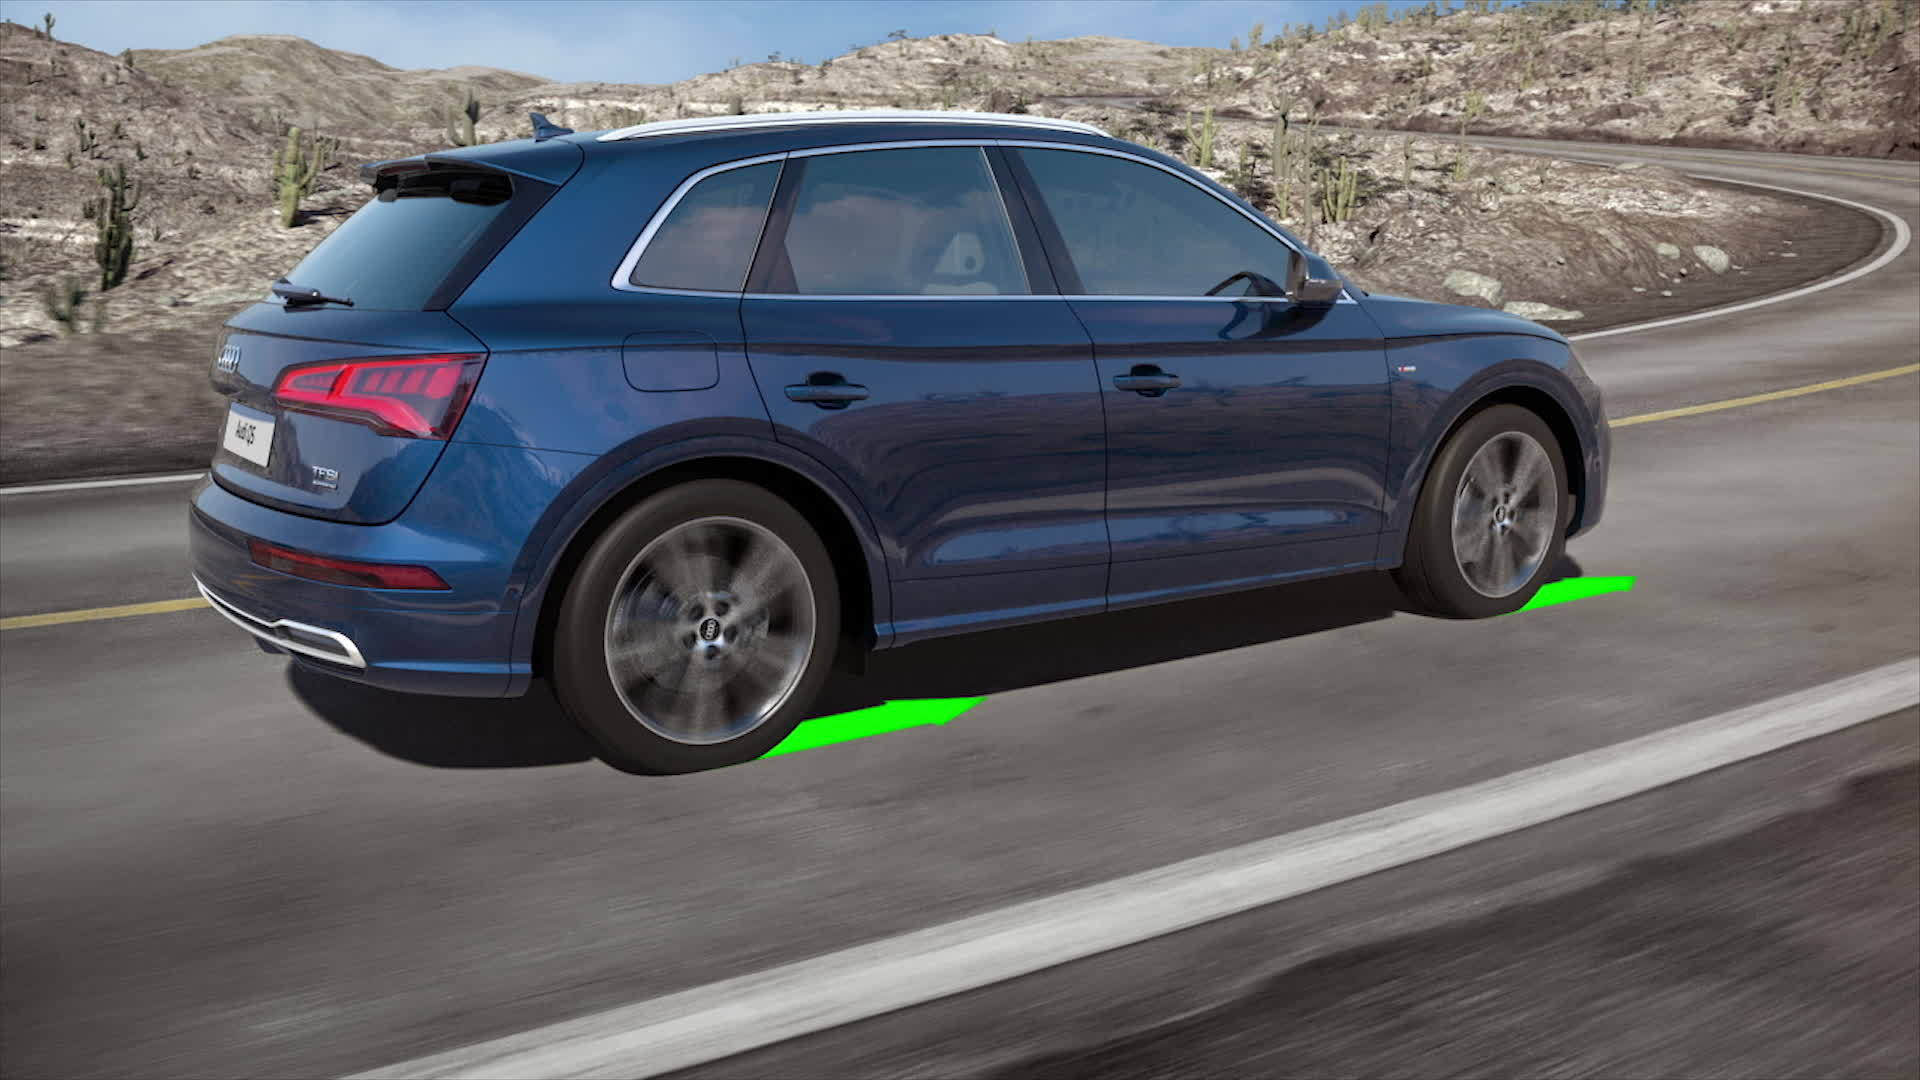 Efficient and dynamic - the quattro drive with ultra technology in the new Audi Q5